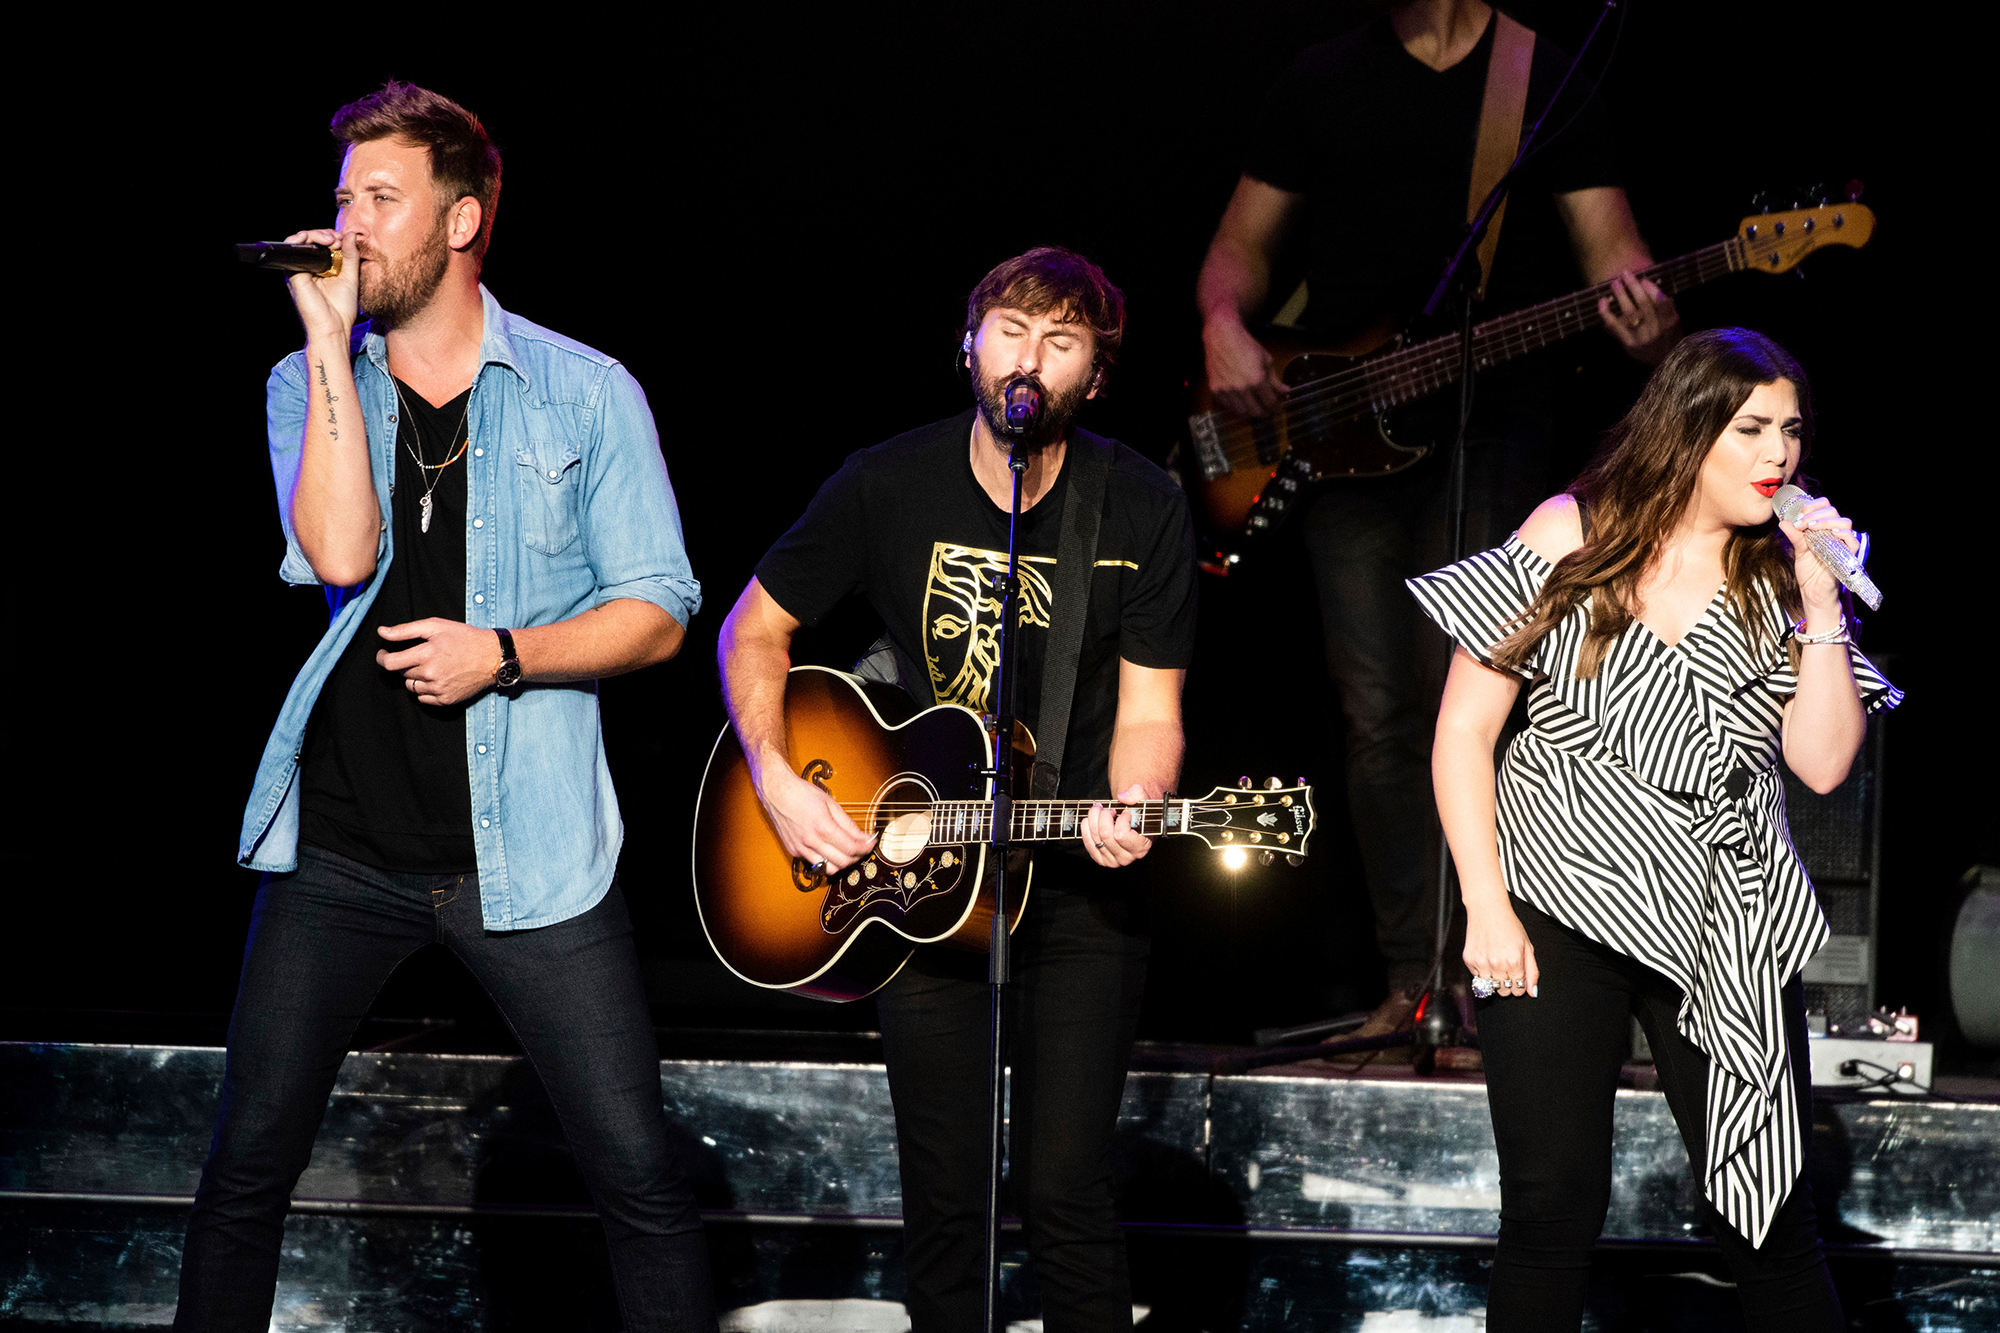 Lady Antebellum's New Song 'What If I Never Get Over You': Listen - Rolling Stone